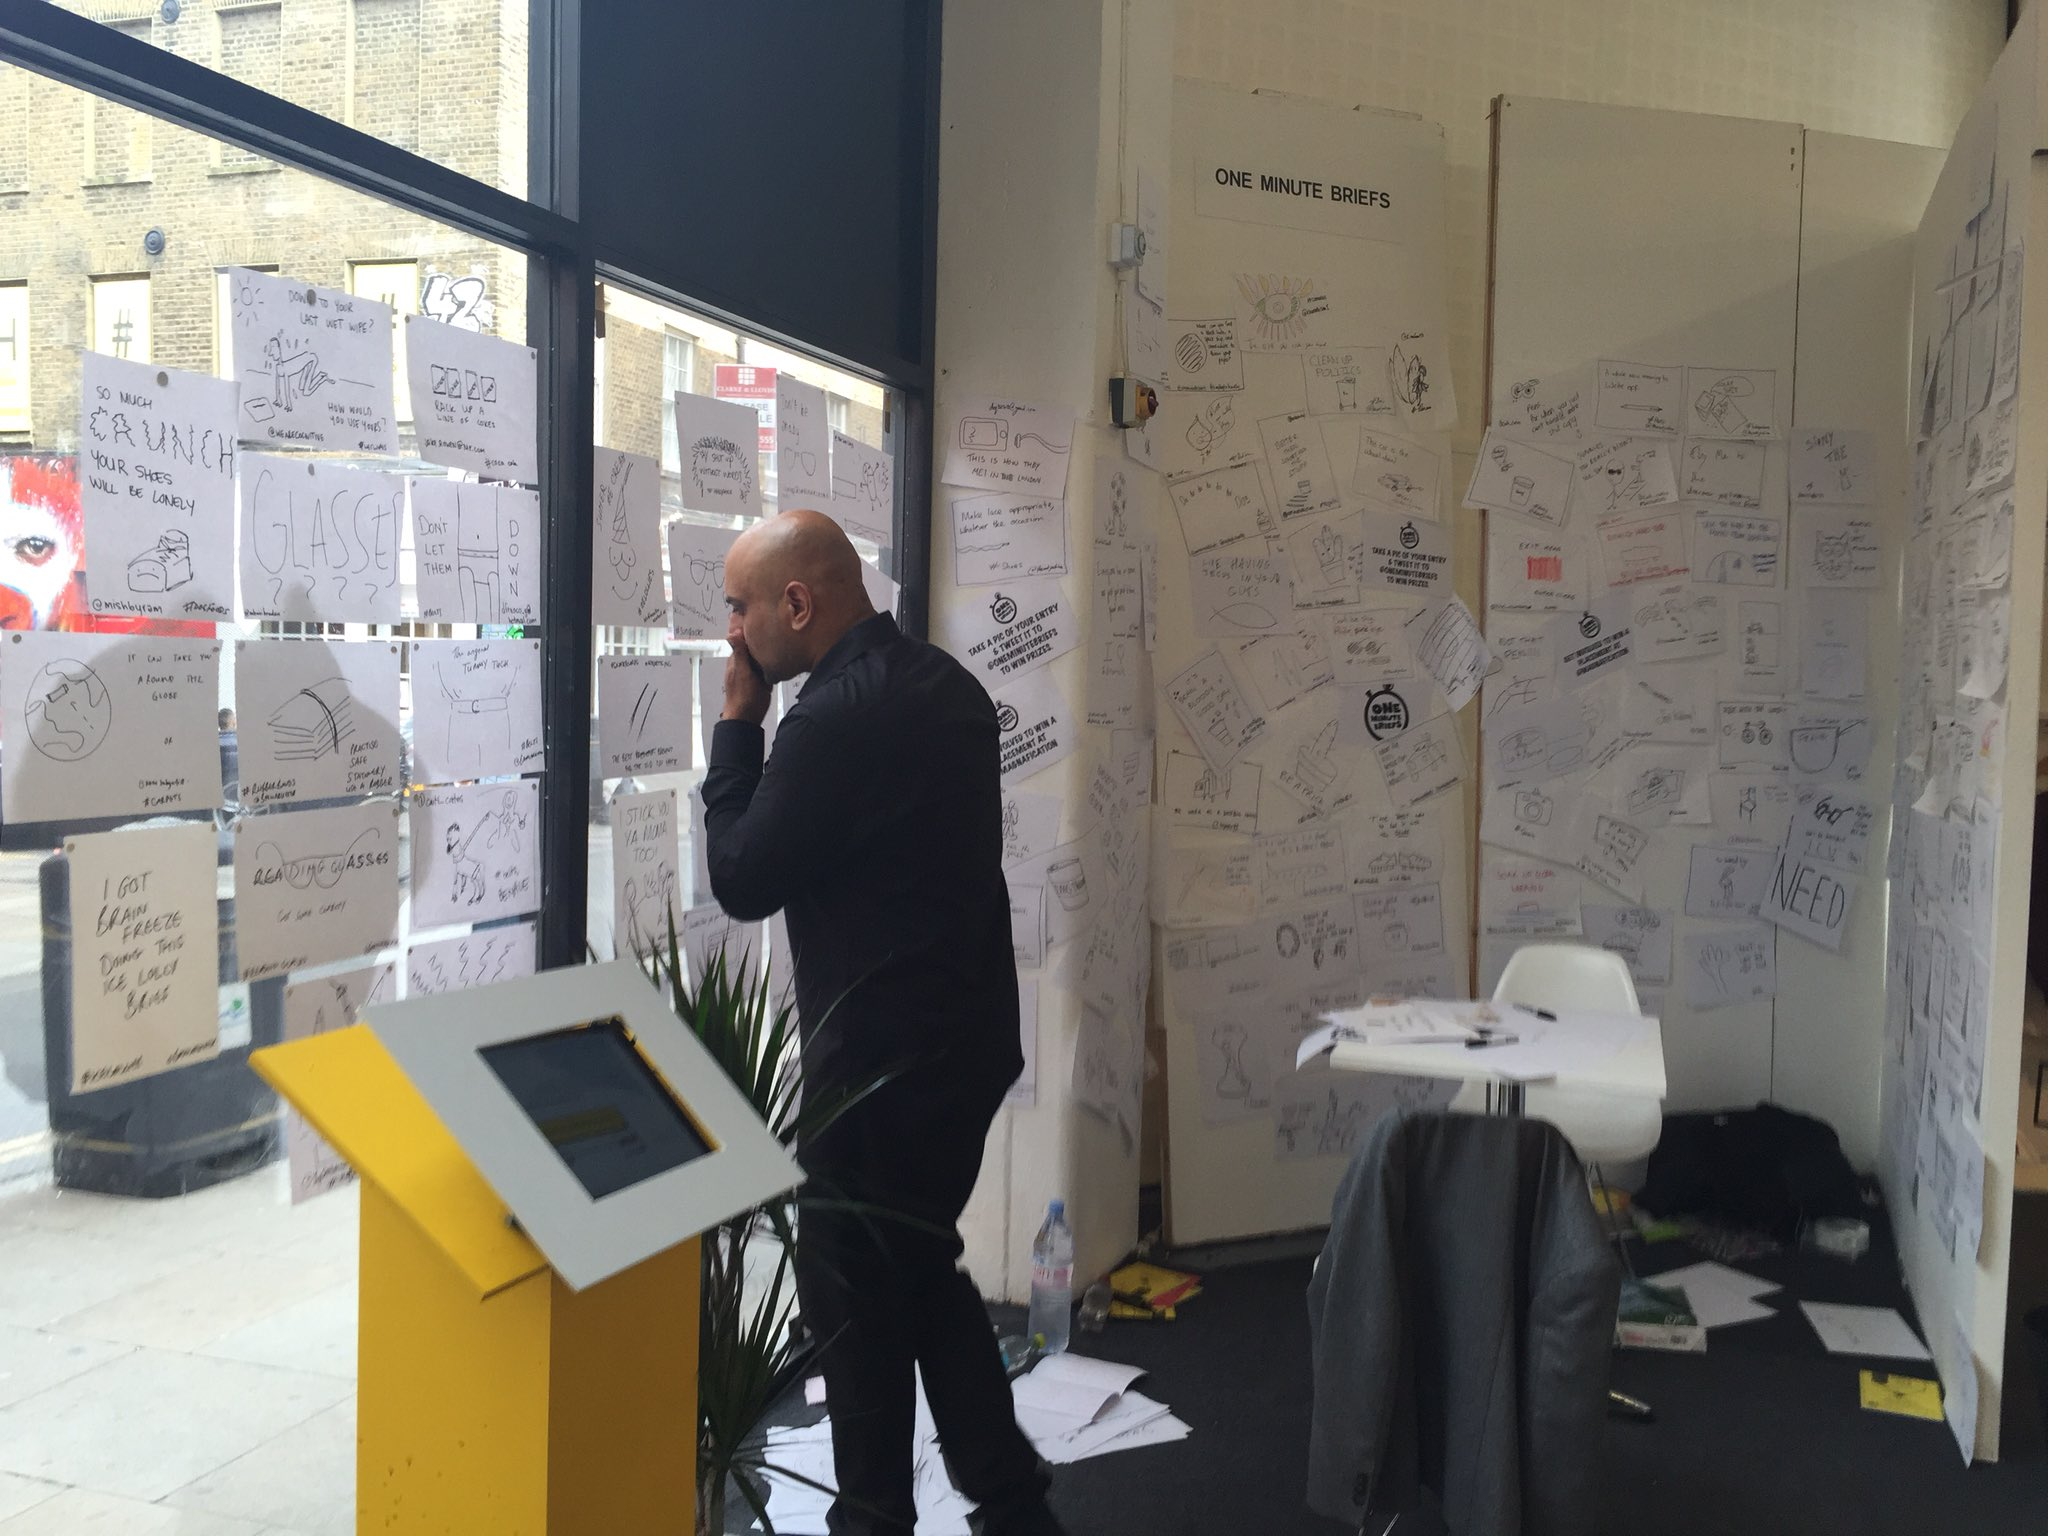 The @OneMinuteBriefs wall at #NewBlood16 is now the 'wall and windows'. About 30 briefs in today https://t.co/PYXPQGLz95